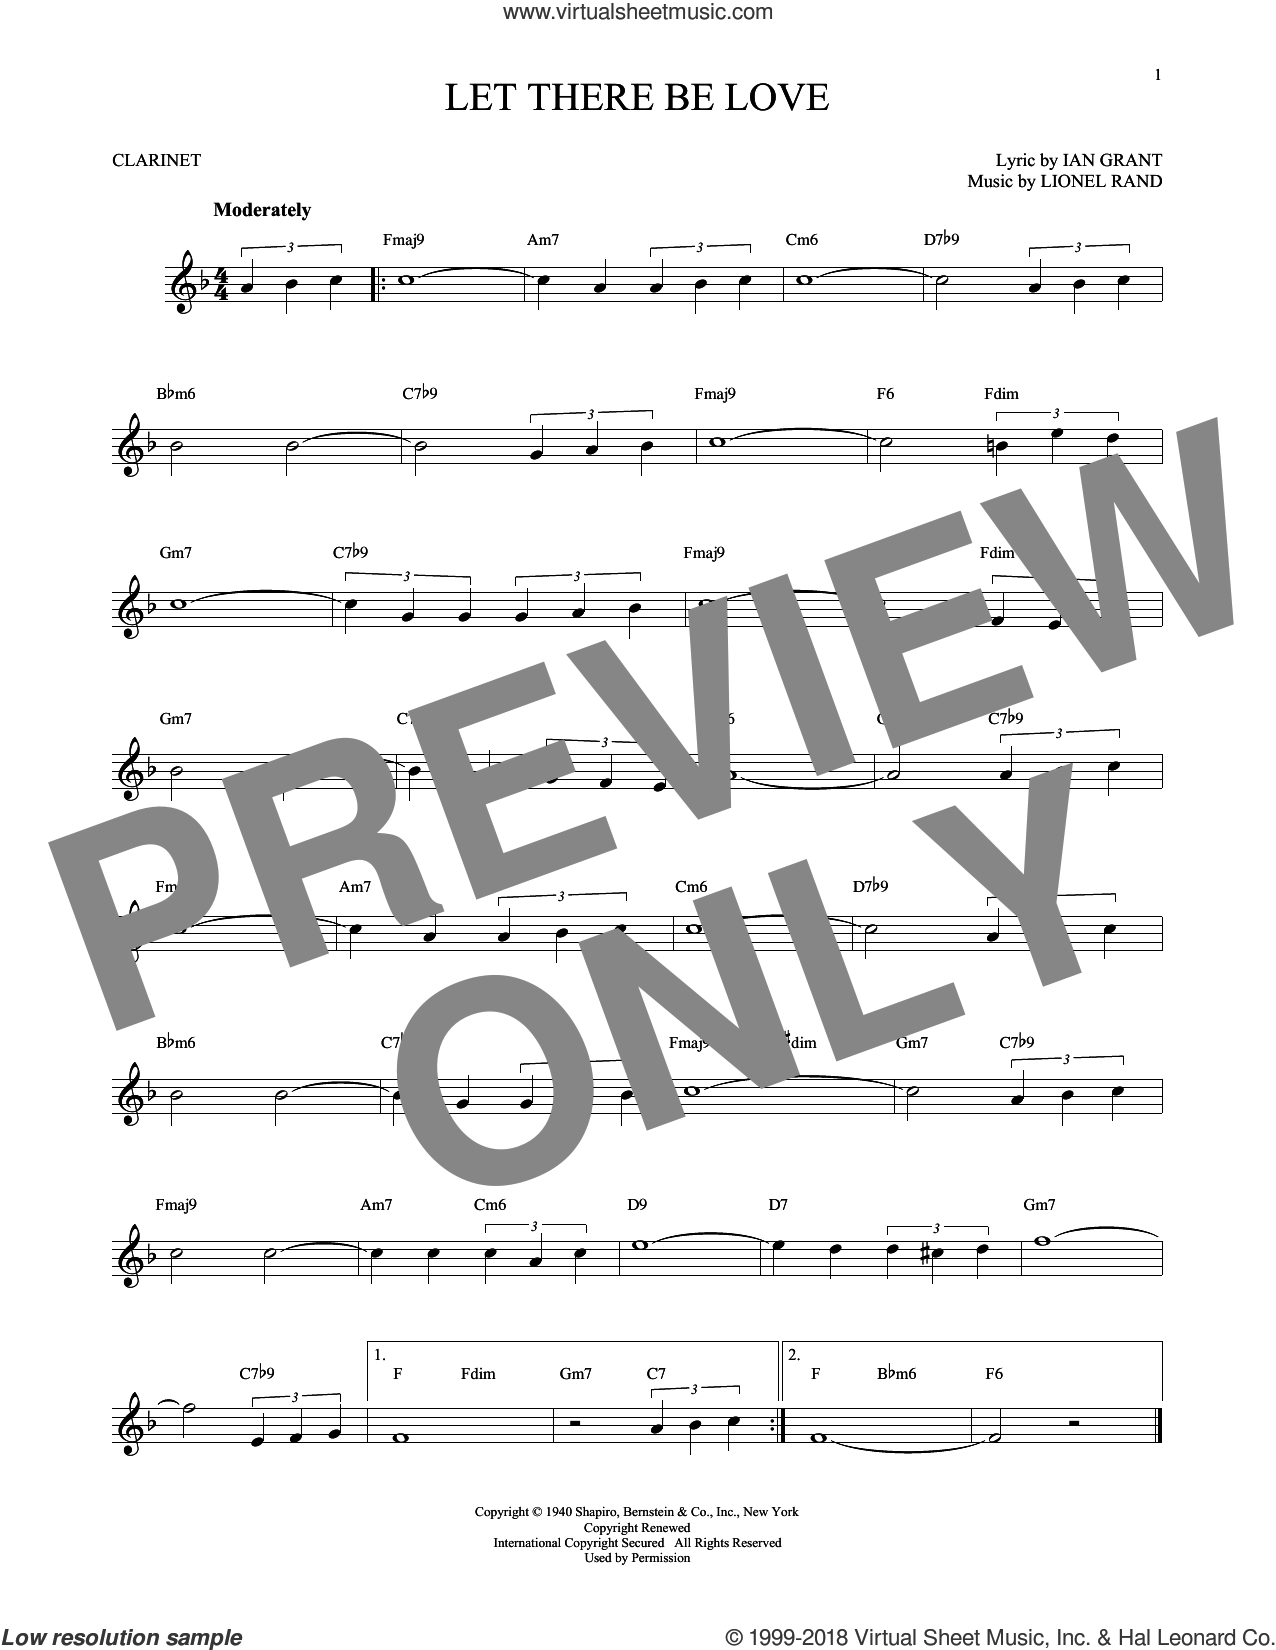 Let There Be Love sheet music for clarinet solo by Ian Grant and Lionel Rand. Score Image Preview.